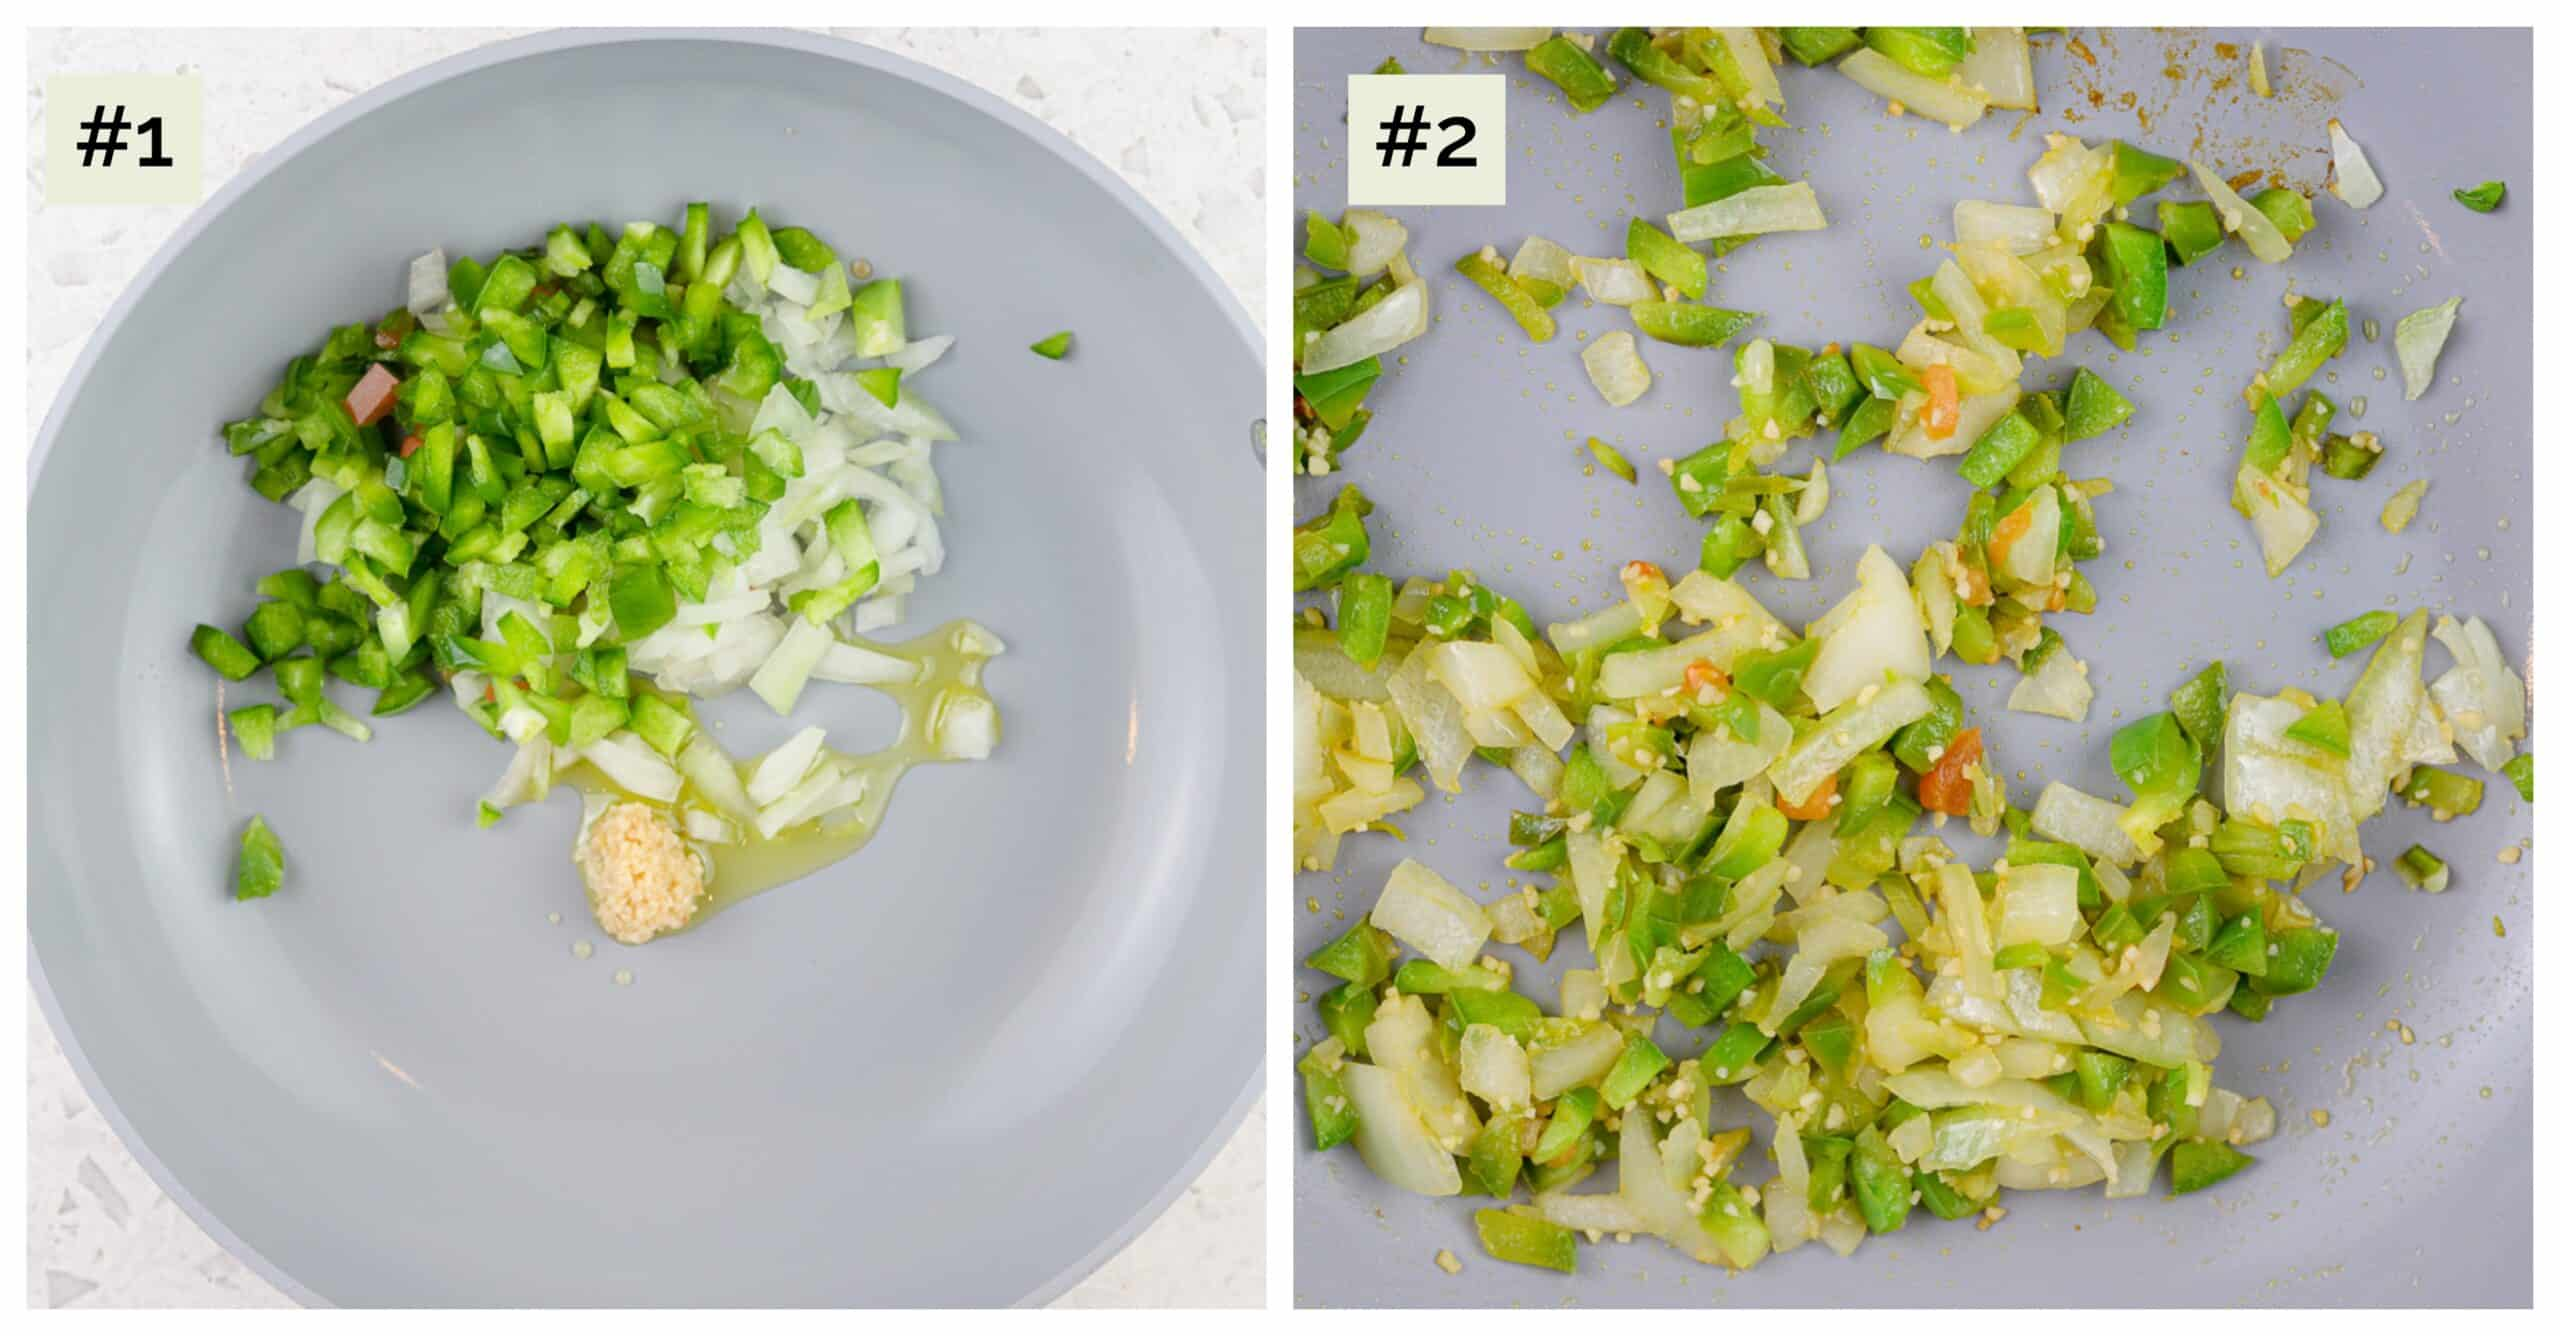 White marble backdrop with 2 picture collage, first image of saute pan  with veggies, second image of cooked veggies in saute pan.